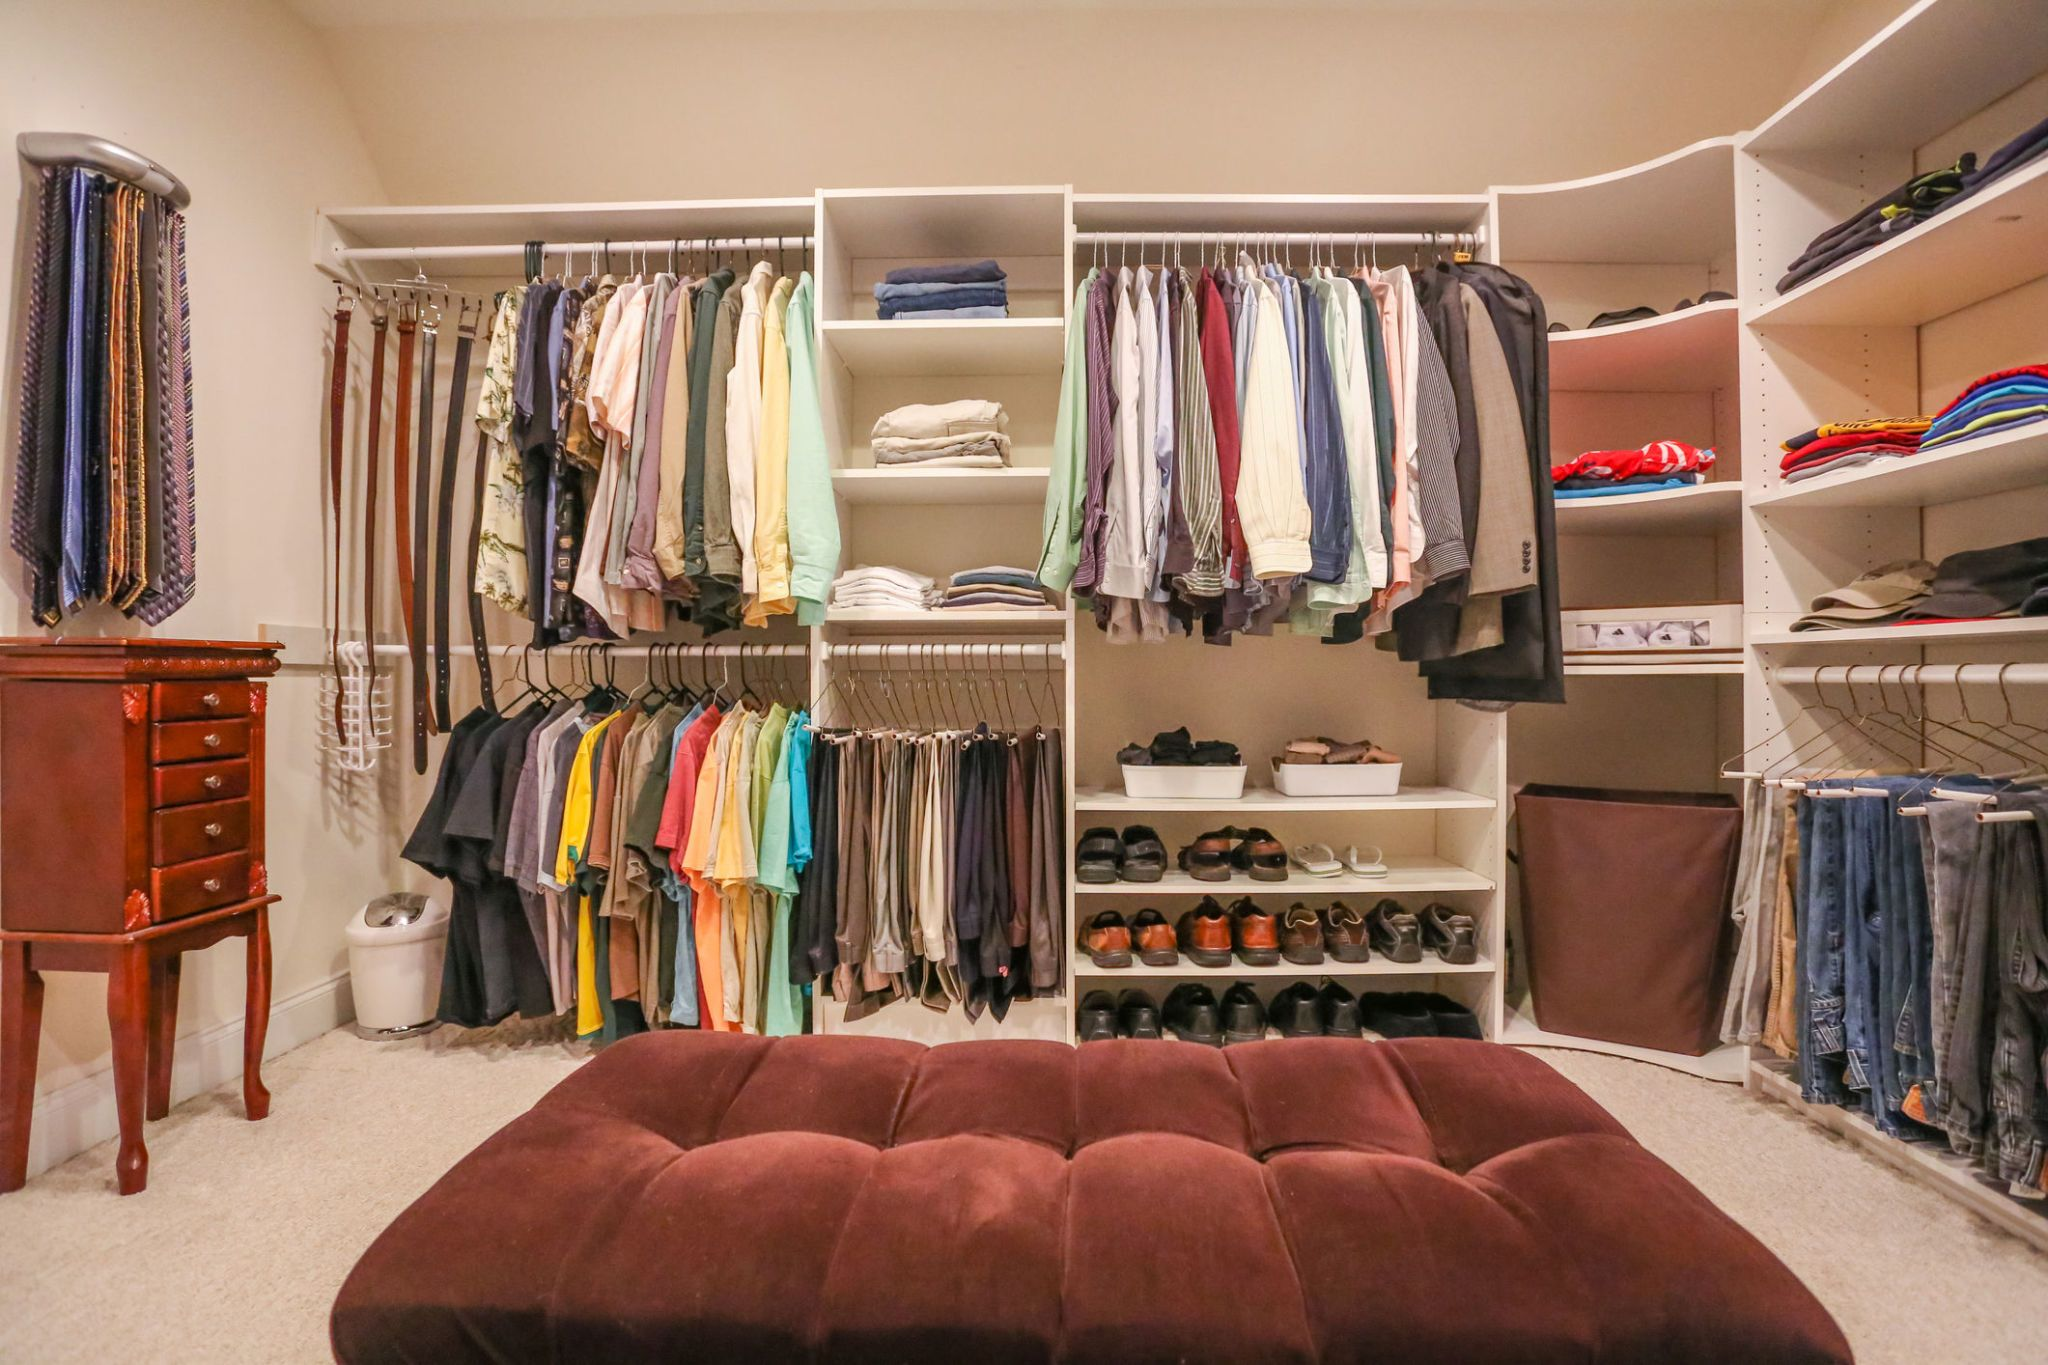 High Quality A Walk In Closet Is A Complete And Utter Waste Of Space